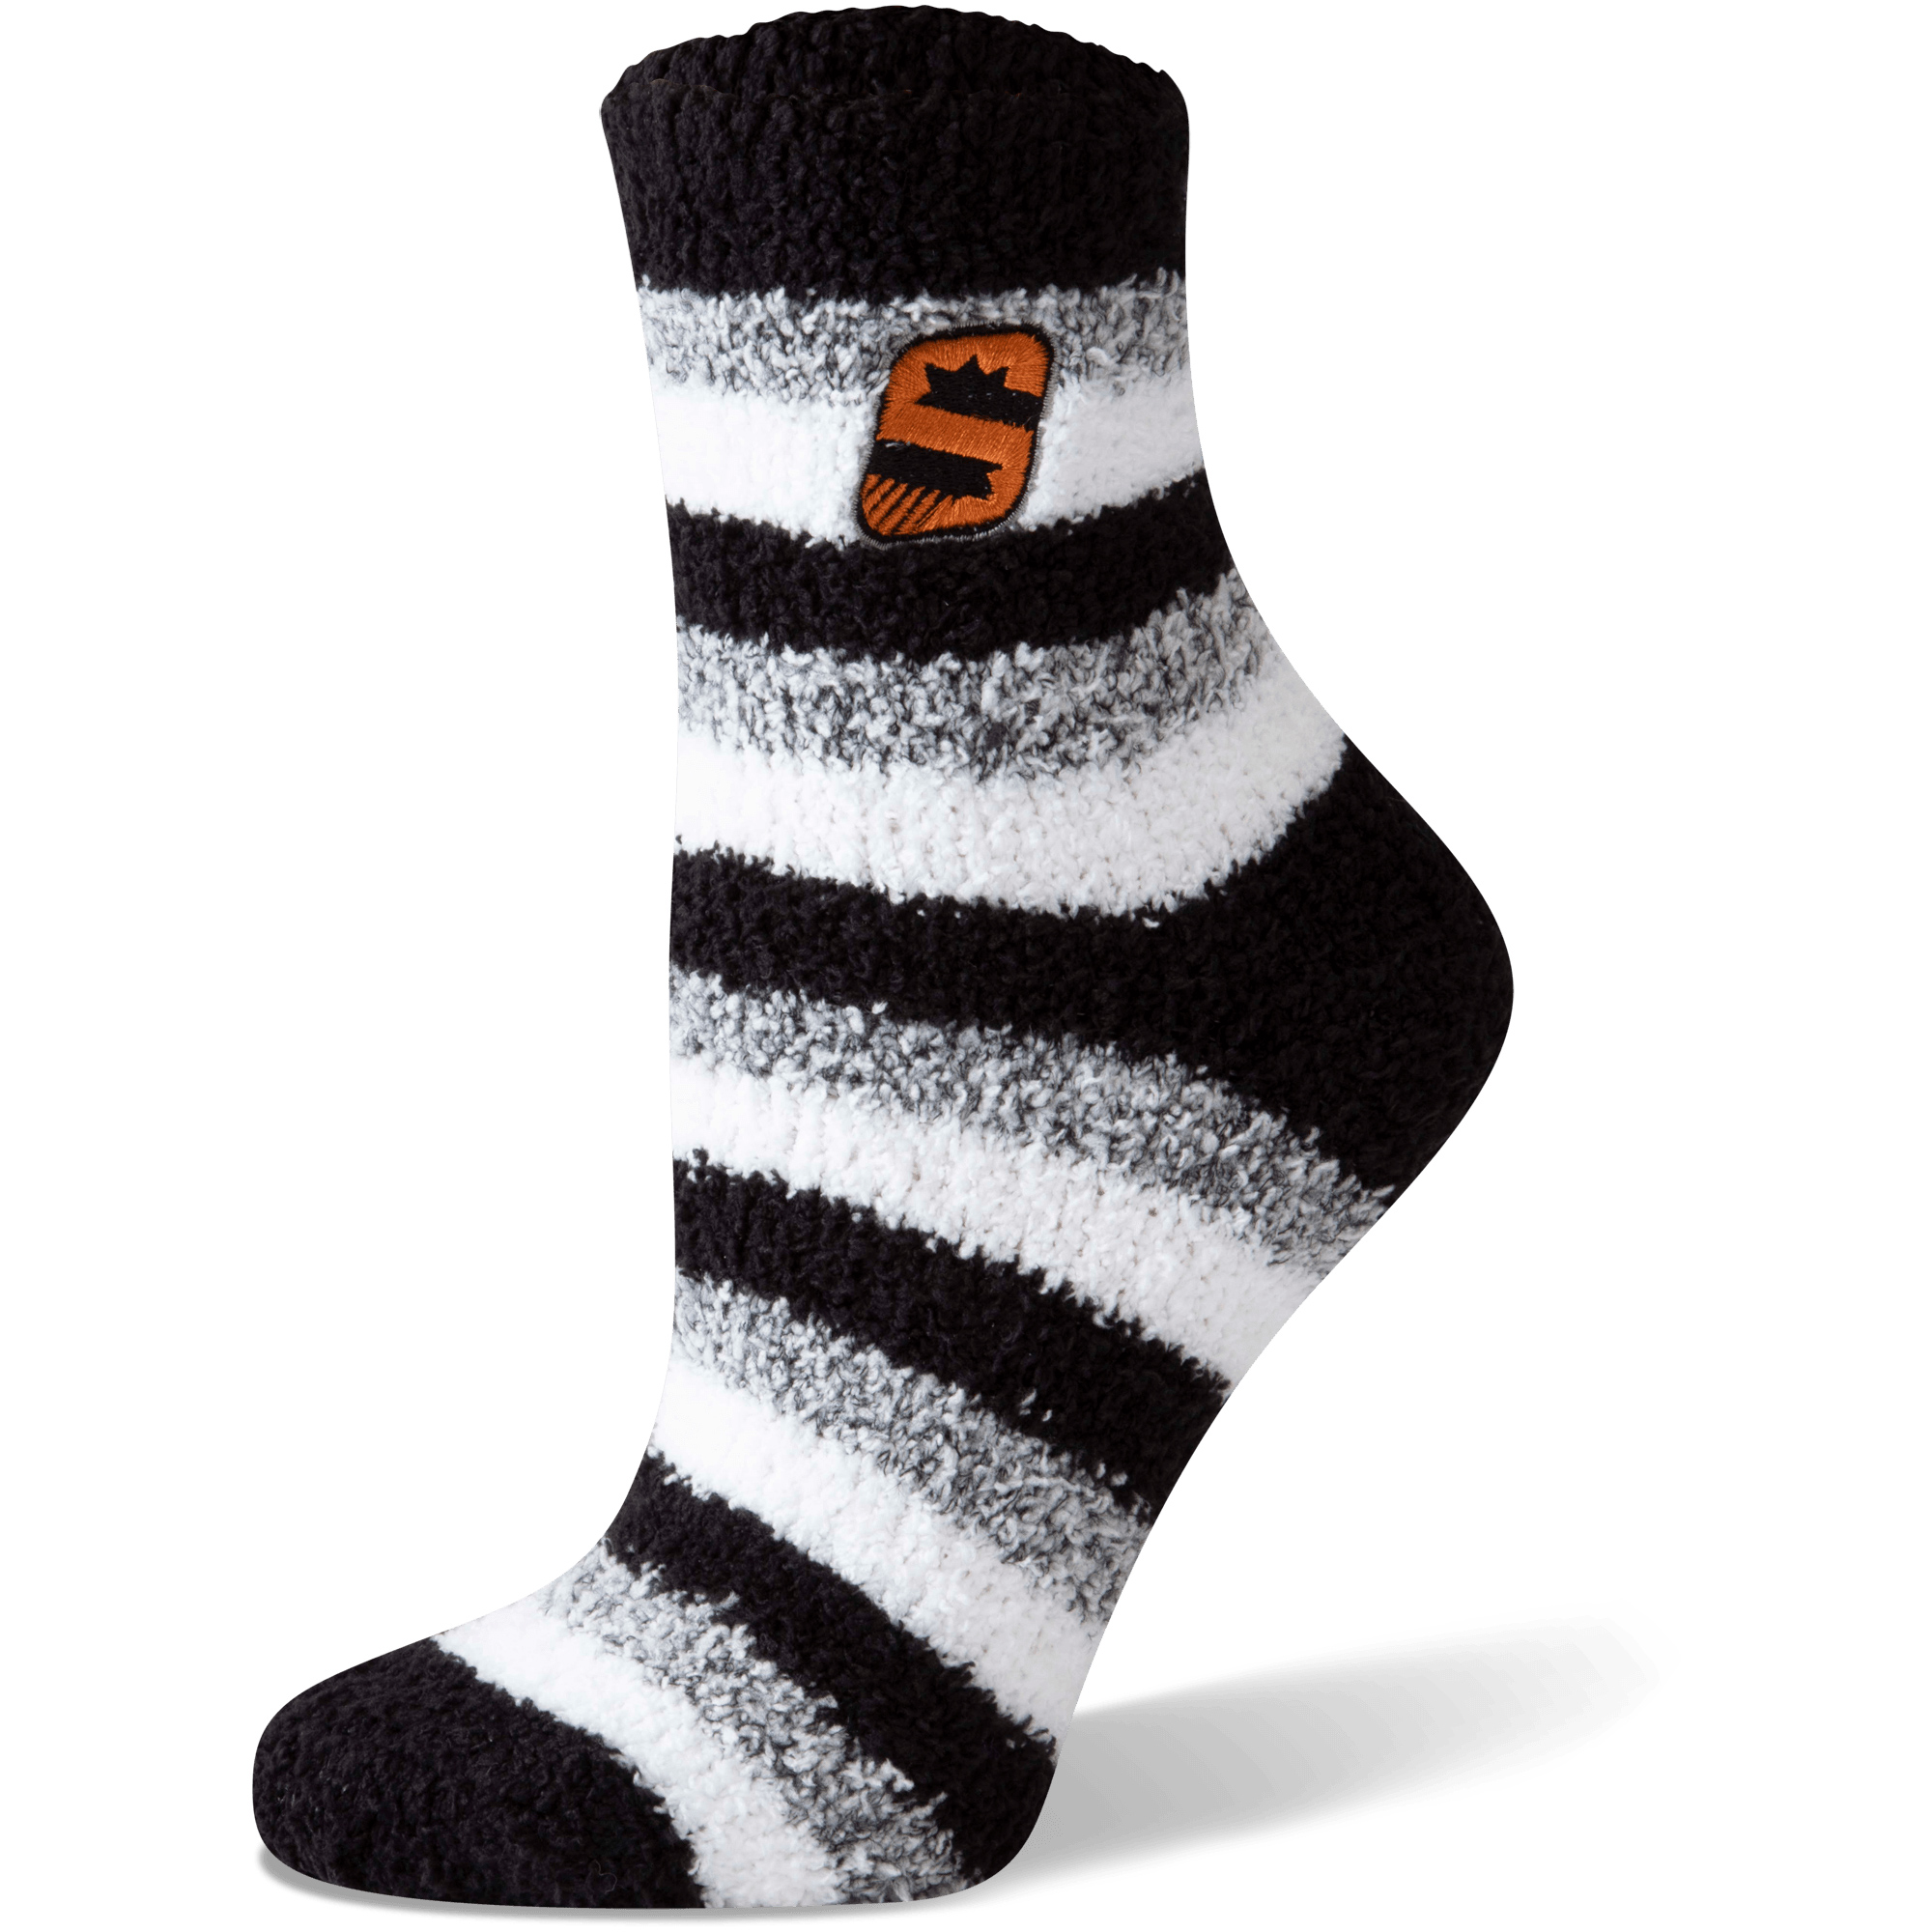 Phoenix Suns Women's Fuzzy Steps Quarter-Length Socks - M